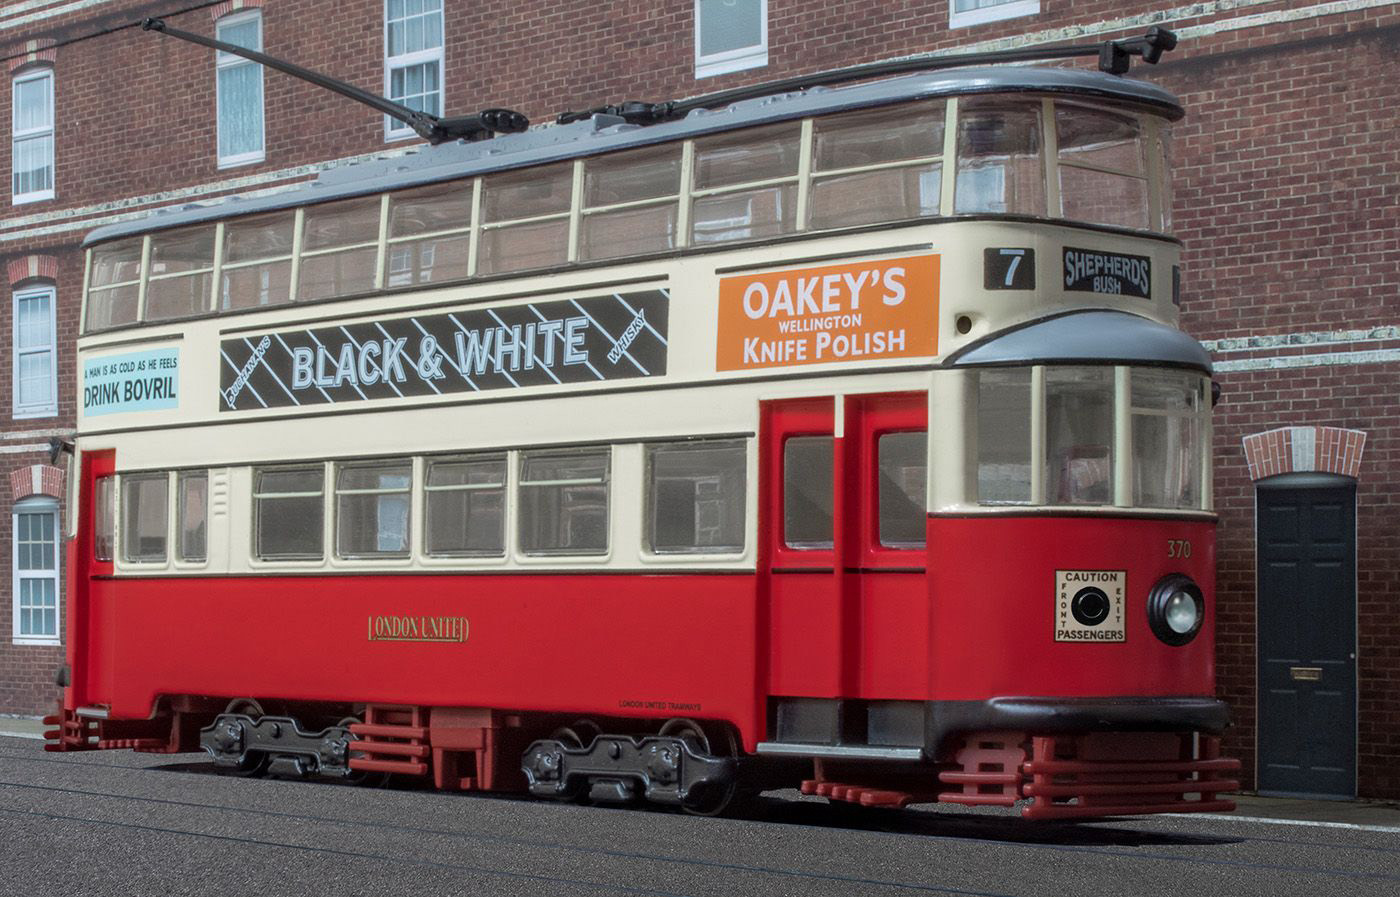 17 MODEL, 6 CENTIMETRES TALL, OF SO-CALLED 'FELTHAM' TRAM BUILT FOR LONDON UNITED TRAMWAYS IN 1931 by Philip Smithies